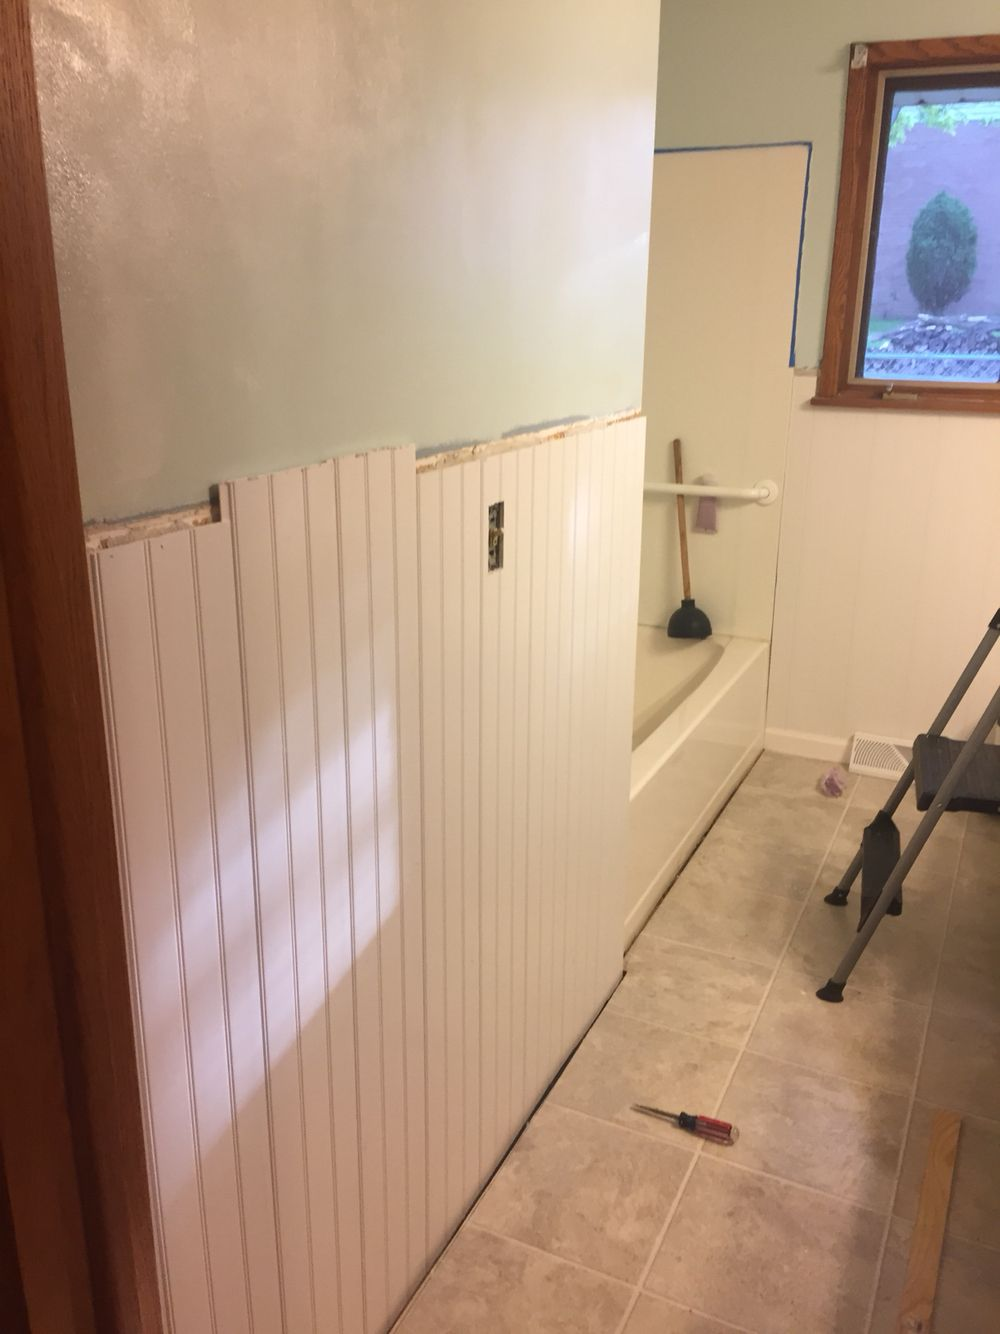 Walls Received Two Coats Of Behr Ultra Melting Moment This Paint Is Great For The Extra Moisture A Bathroom